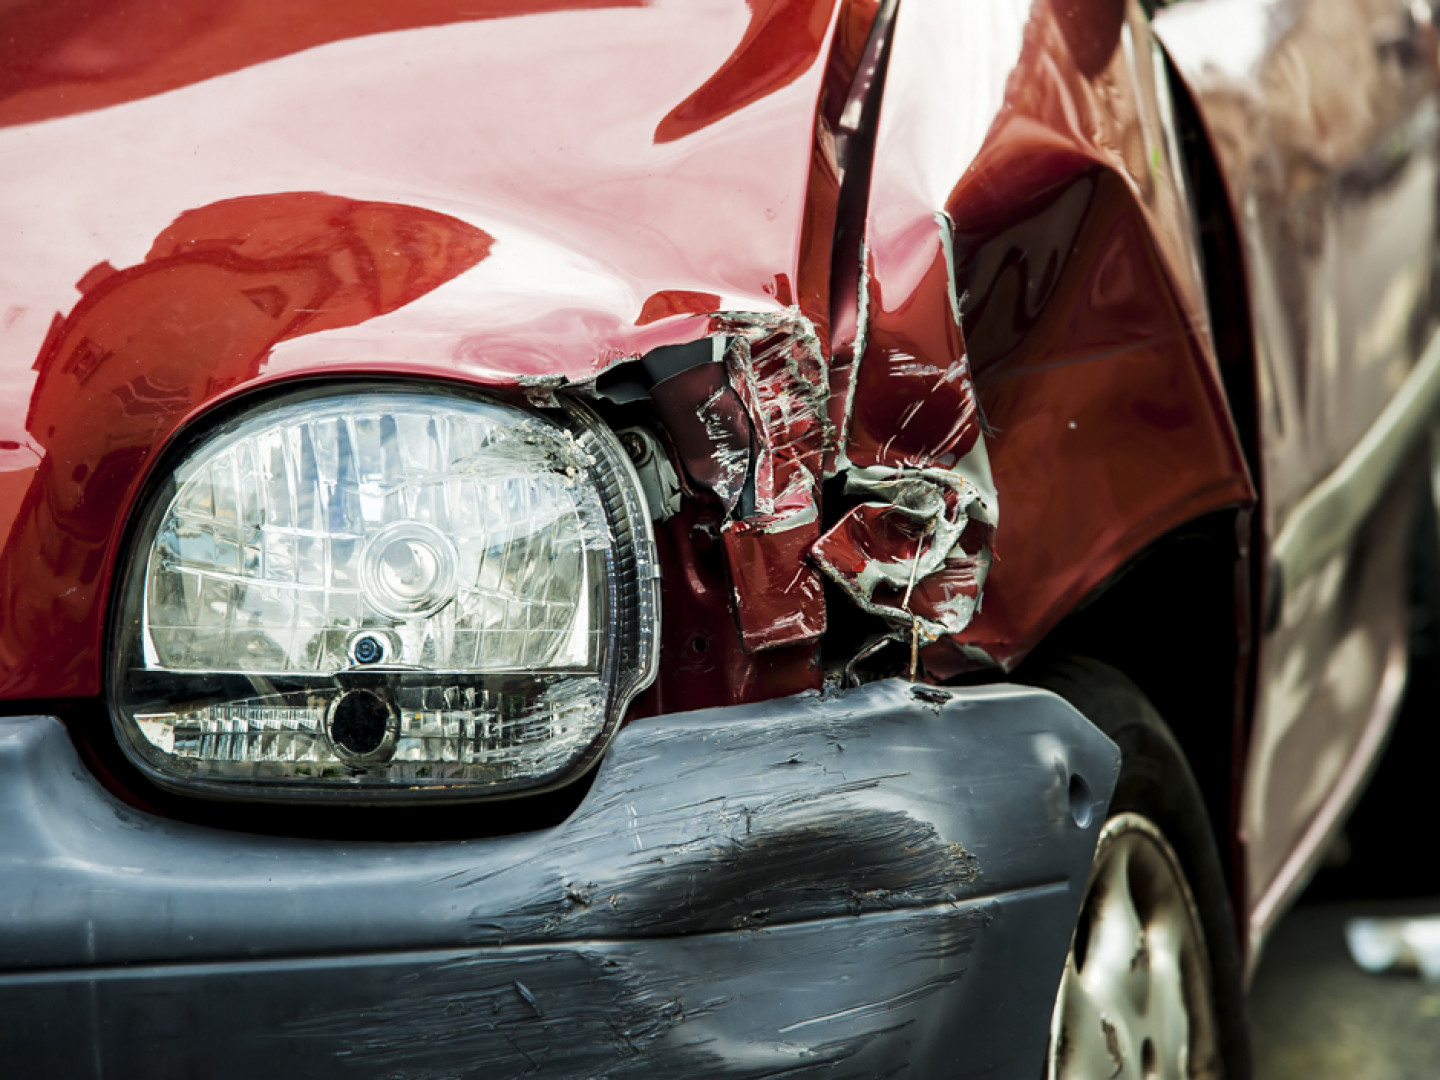 Were You Hurt in an Auto Accident?